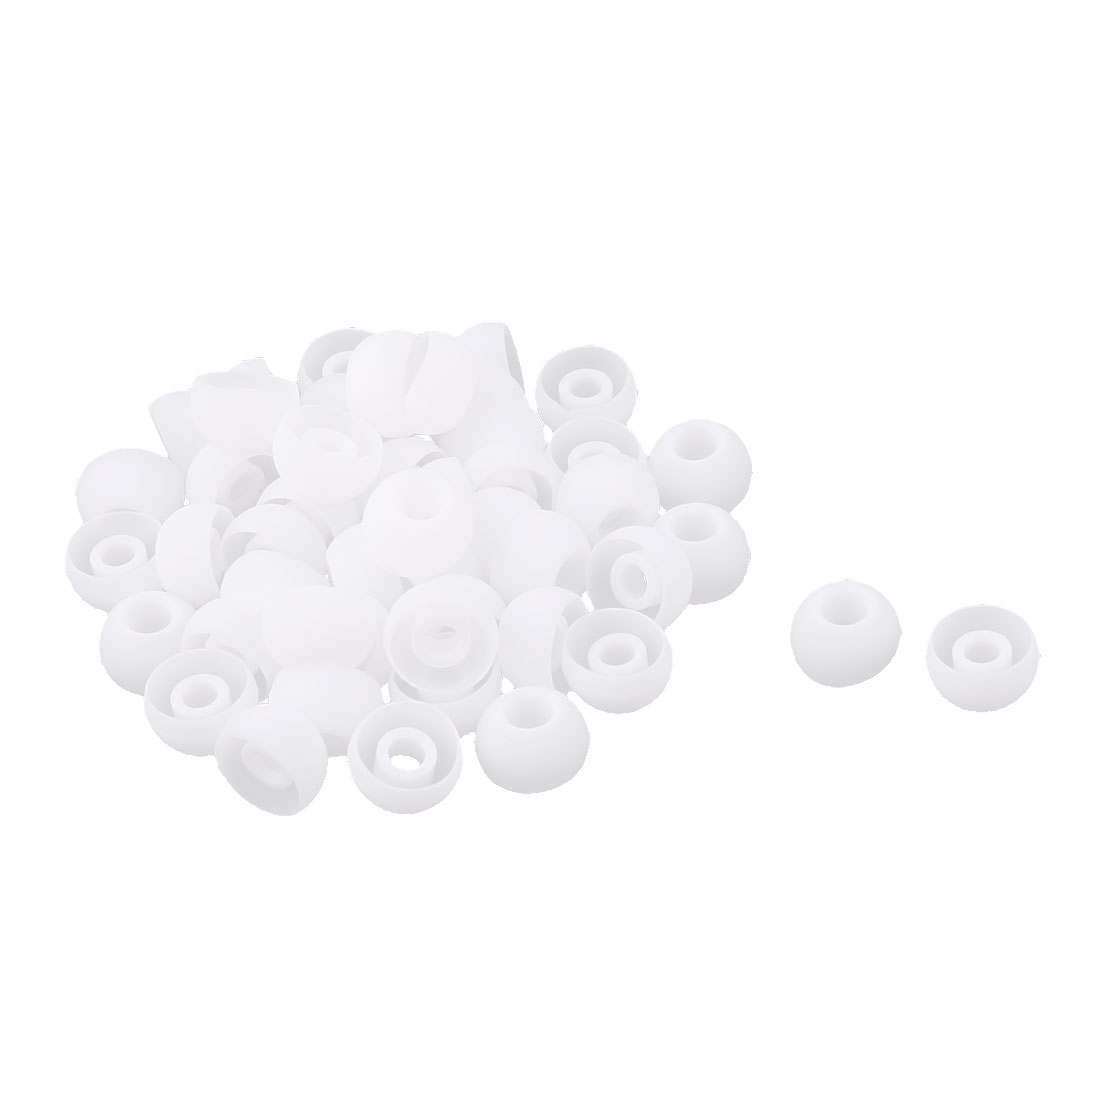 Earphone Headphone Silicone Replacement In Ear Bud Tip Cap Cover White 50 Pcs